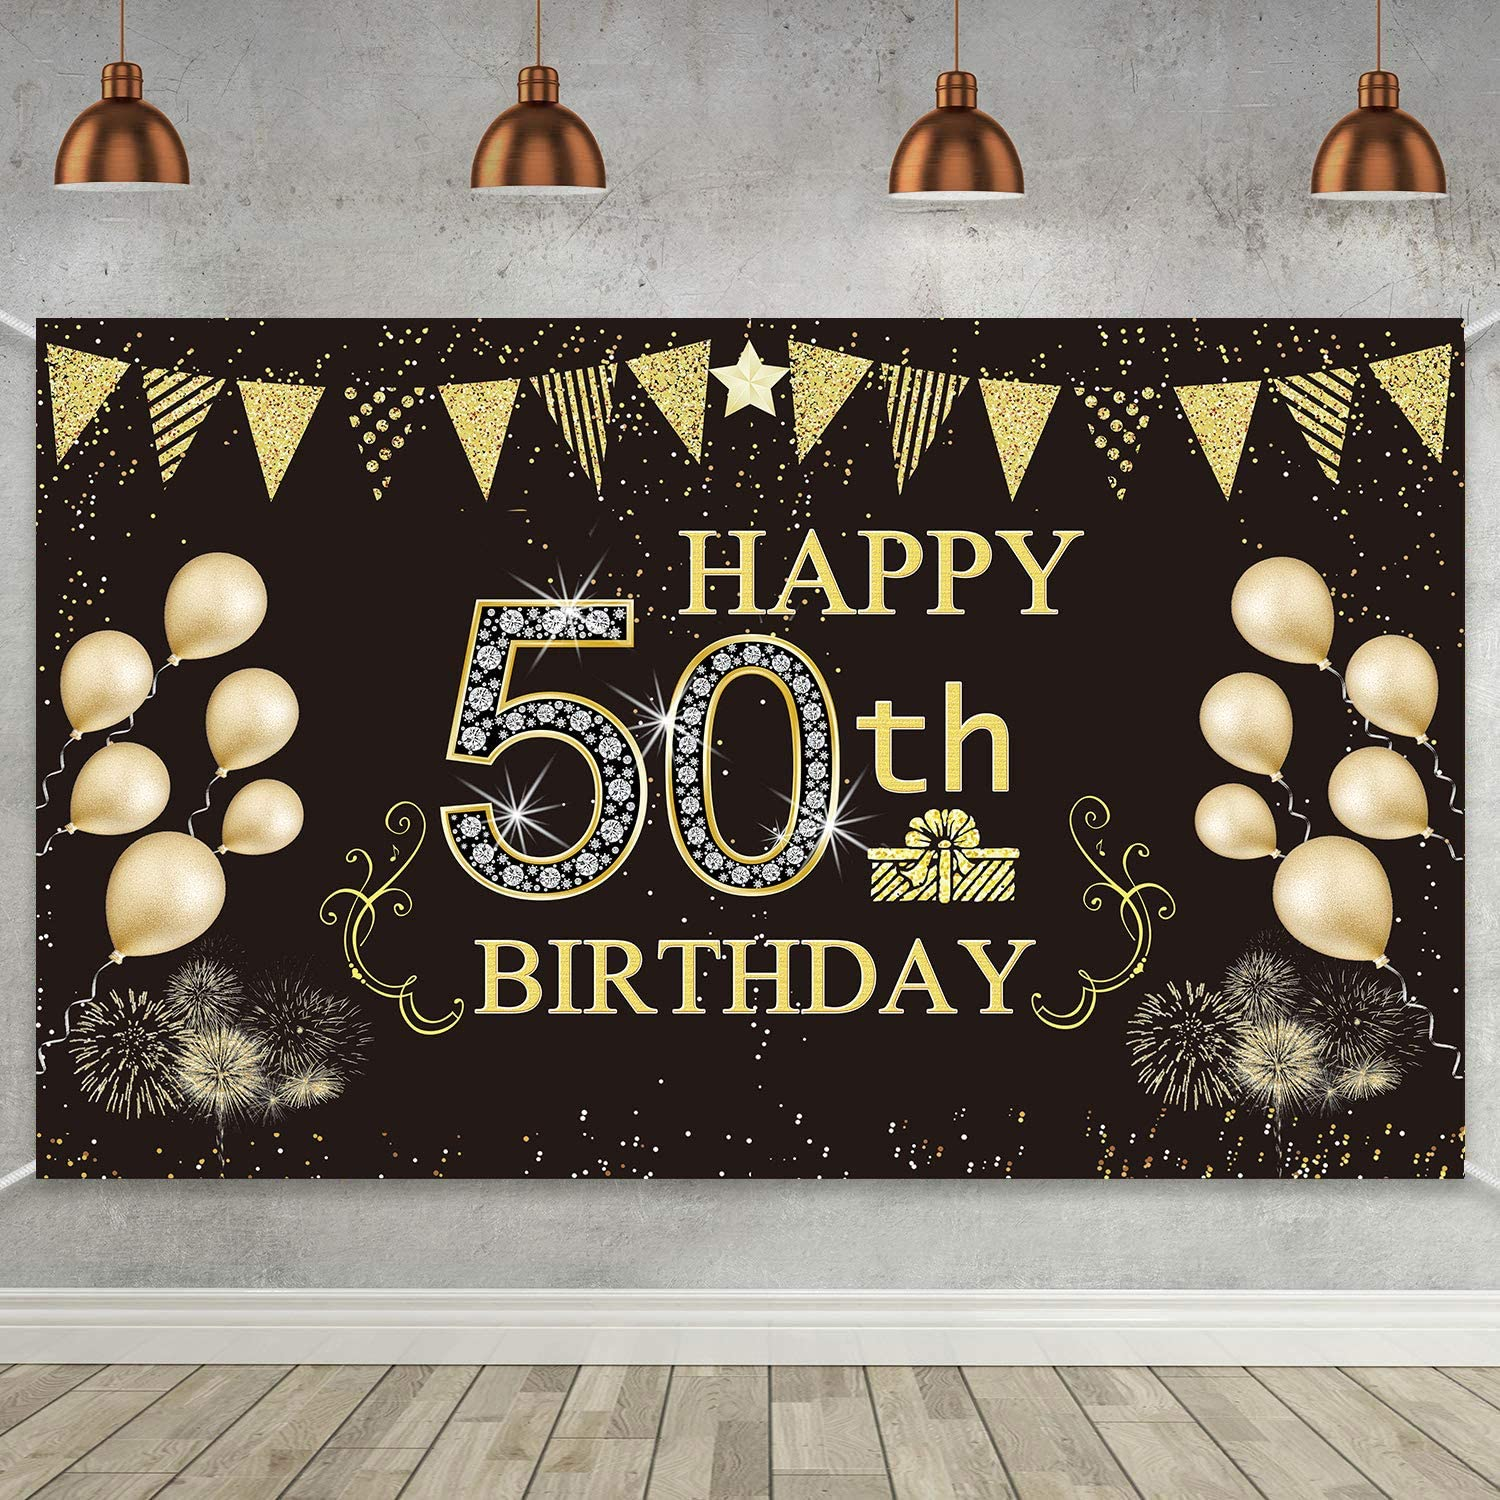 6 x 3.6 ft Cheers to 50 Years Backdrop Background Banner for 50th Anniversary Decorations 50th Birthday Black Gold Party Decorations